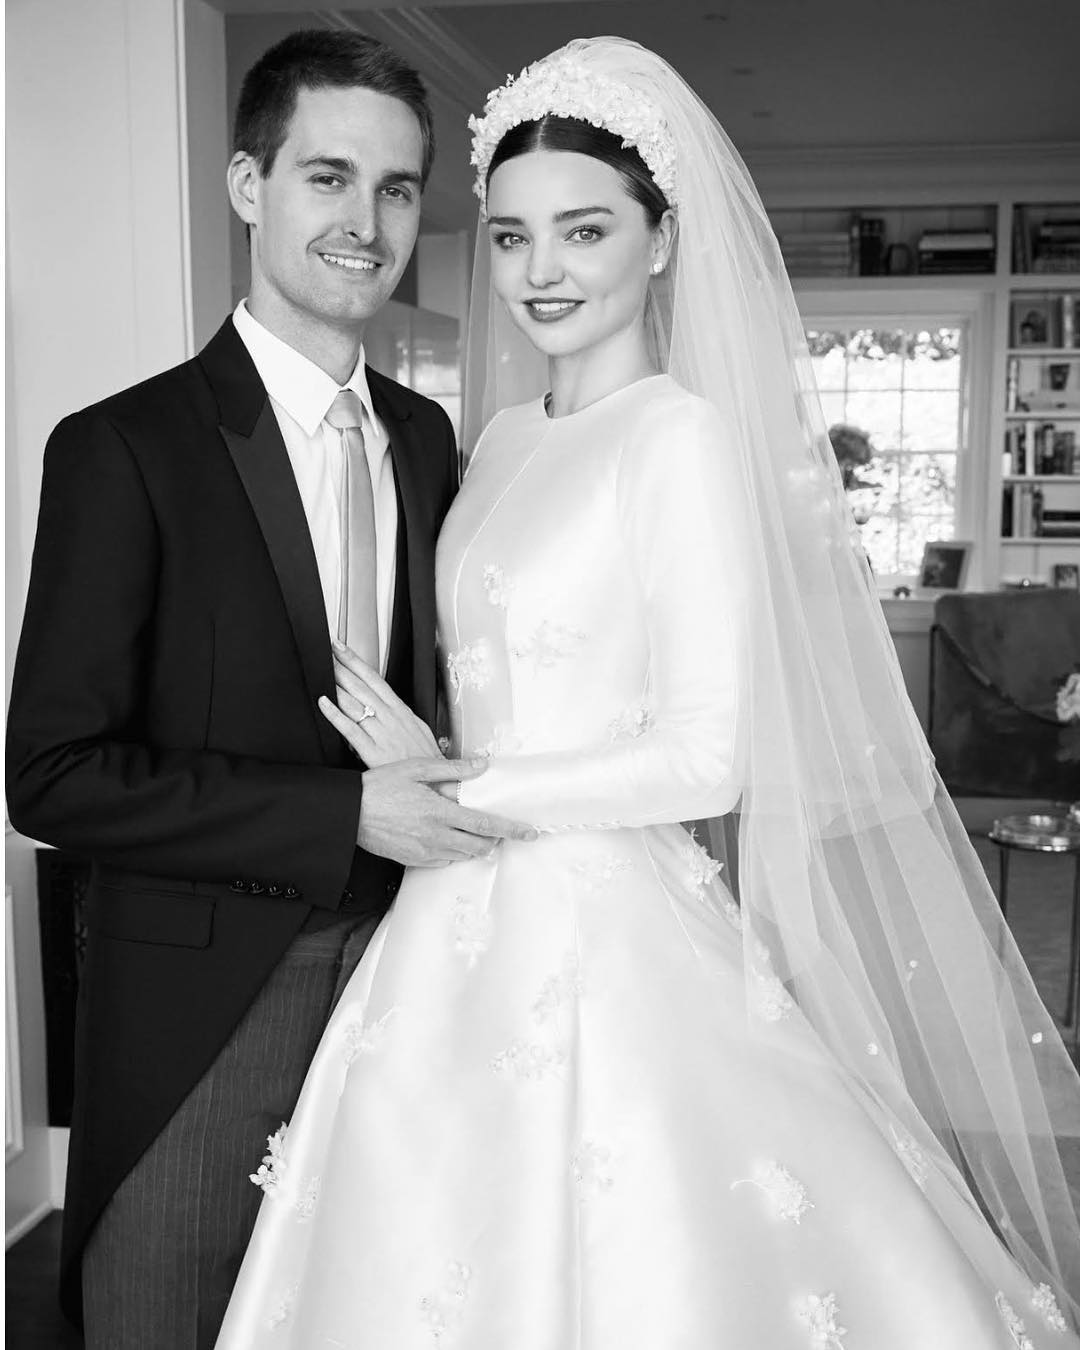 Miranda Kerr and Evan Spiegel on their wedding day